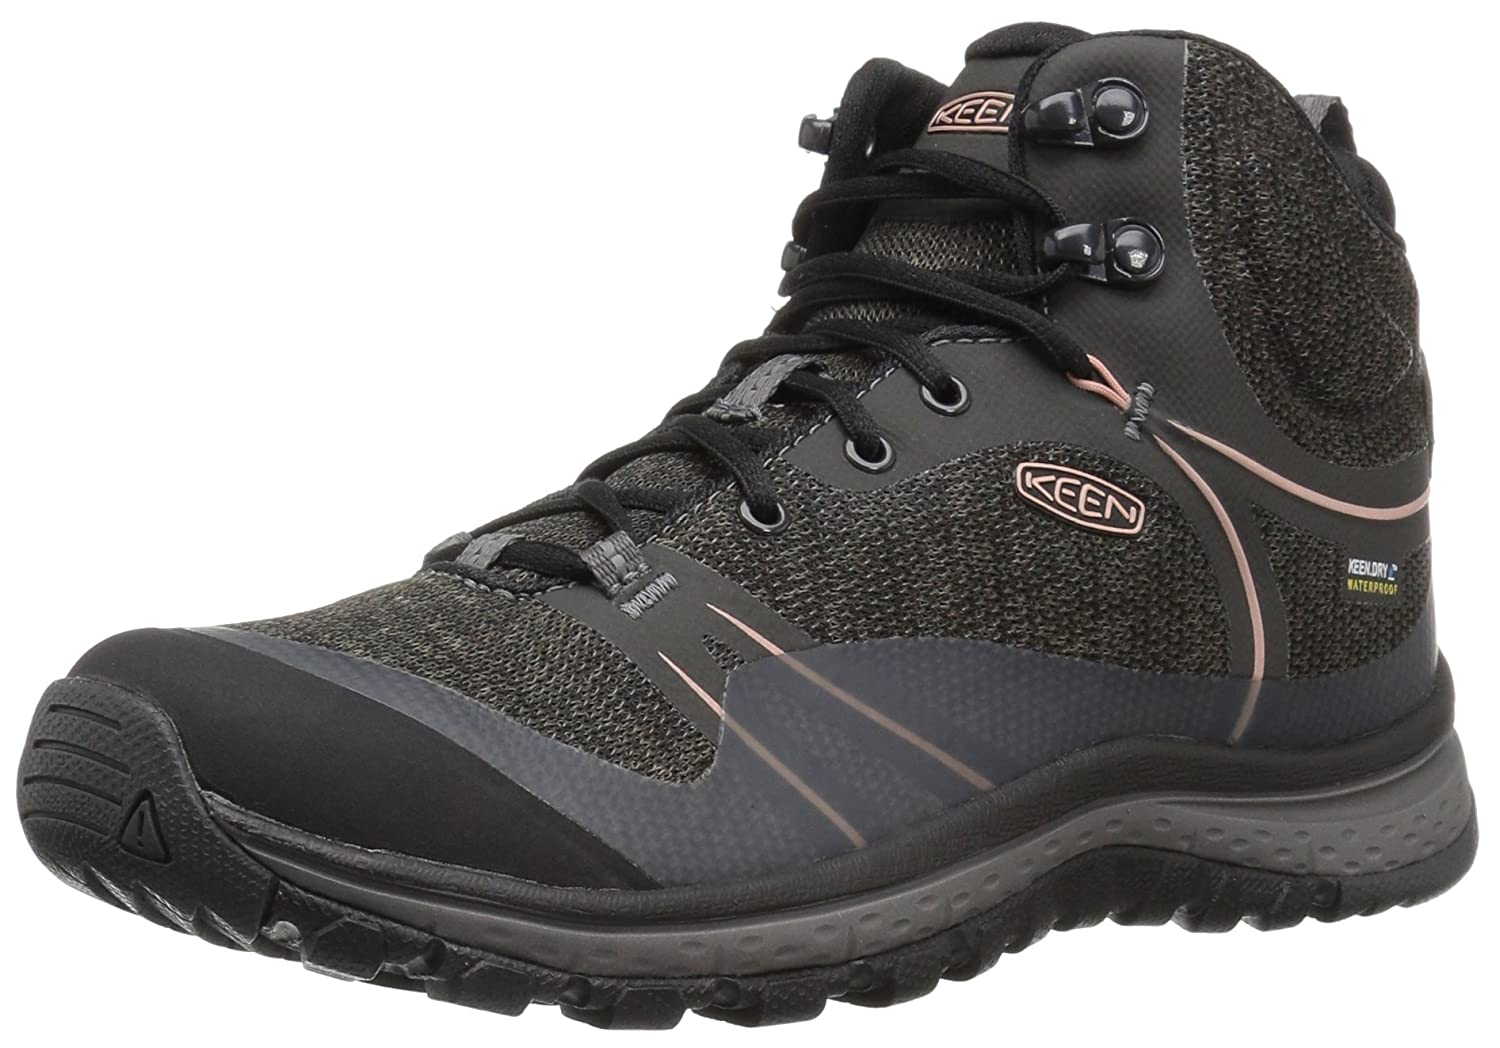 KEEN Women's Terradora Mid Waterproof Hiking Shoe B01H8GII1G 10.5 B(M) US|Raven/Rose Dawn